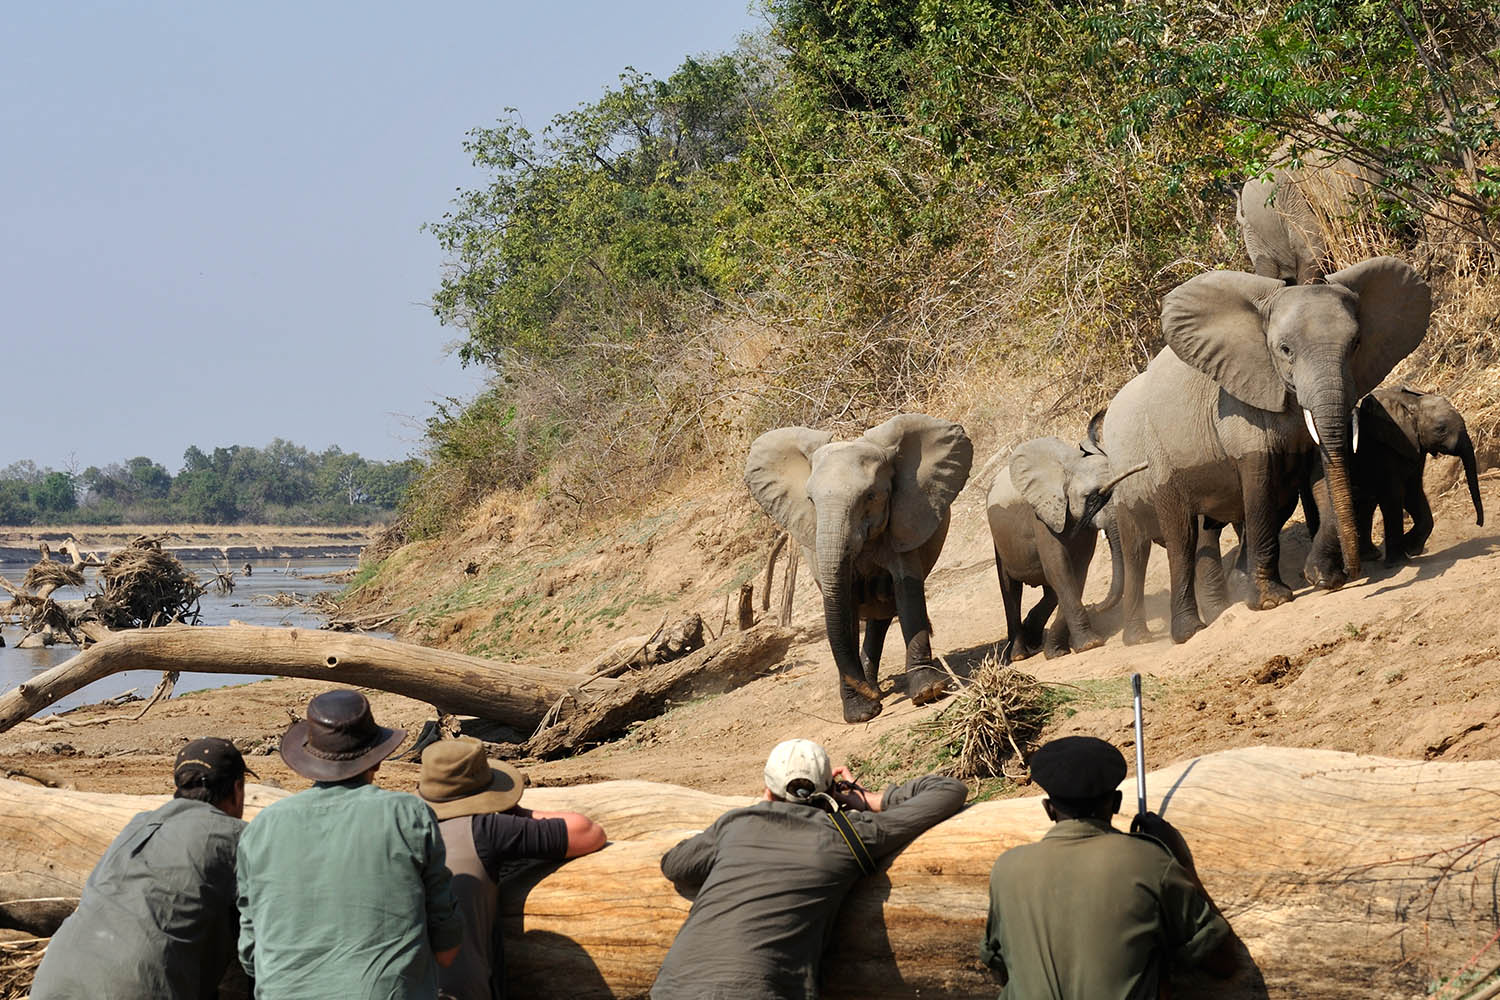 kaingo-camp-luxury-lodge-zambia-in-style-tours-safari-packages-lodges-travel-south-luangwa-national-park-elephant-hide